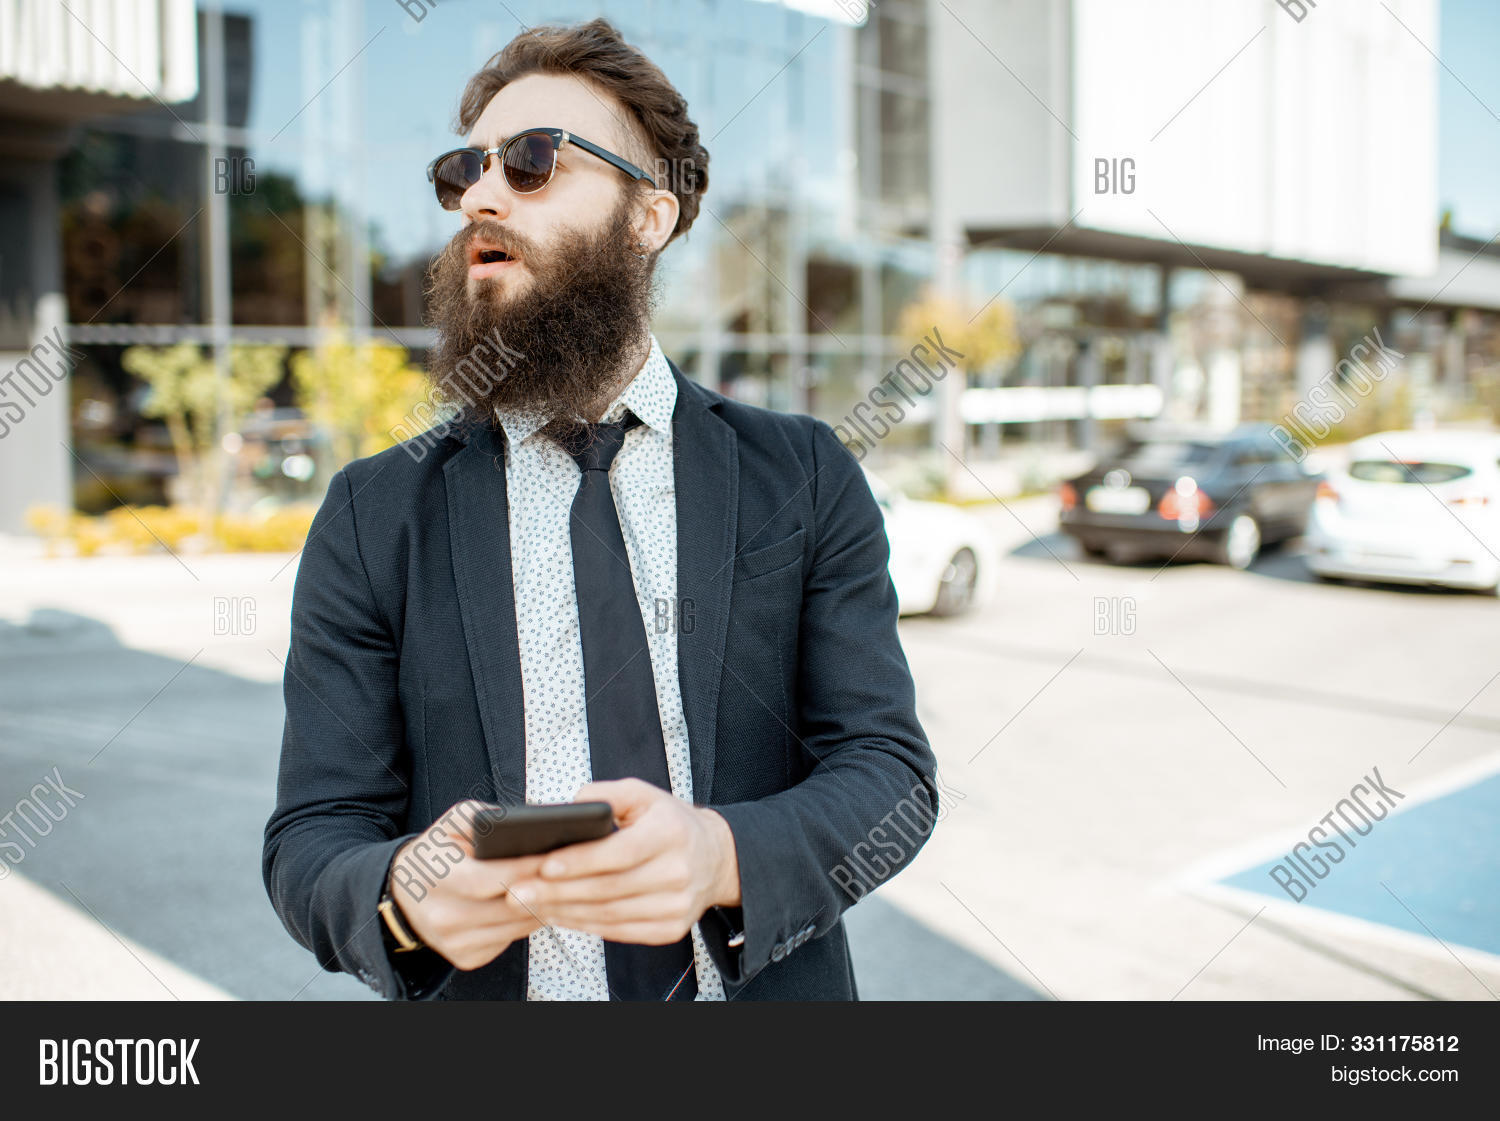 adult,beard,boss,building,business,businessman,businesspeople,caucasian,city,confident,corporate,elegant,exterior,finance,handsome,hipster,male,man,manager,mobile,office,one,outdoor,people,person,phone,portrait,professional,success,successful,suit,sunglasses,talking,tie,urban,work,worker,young